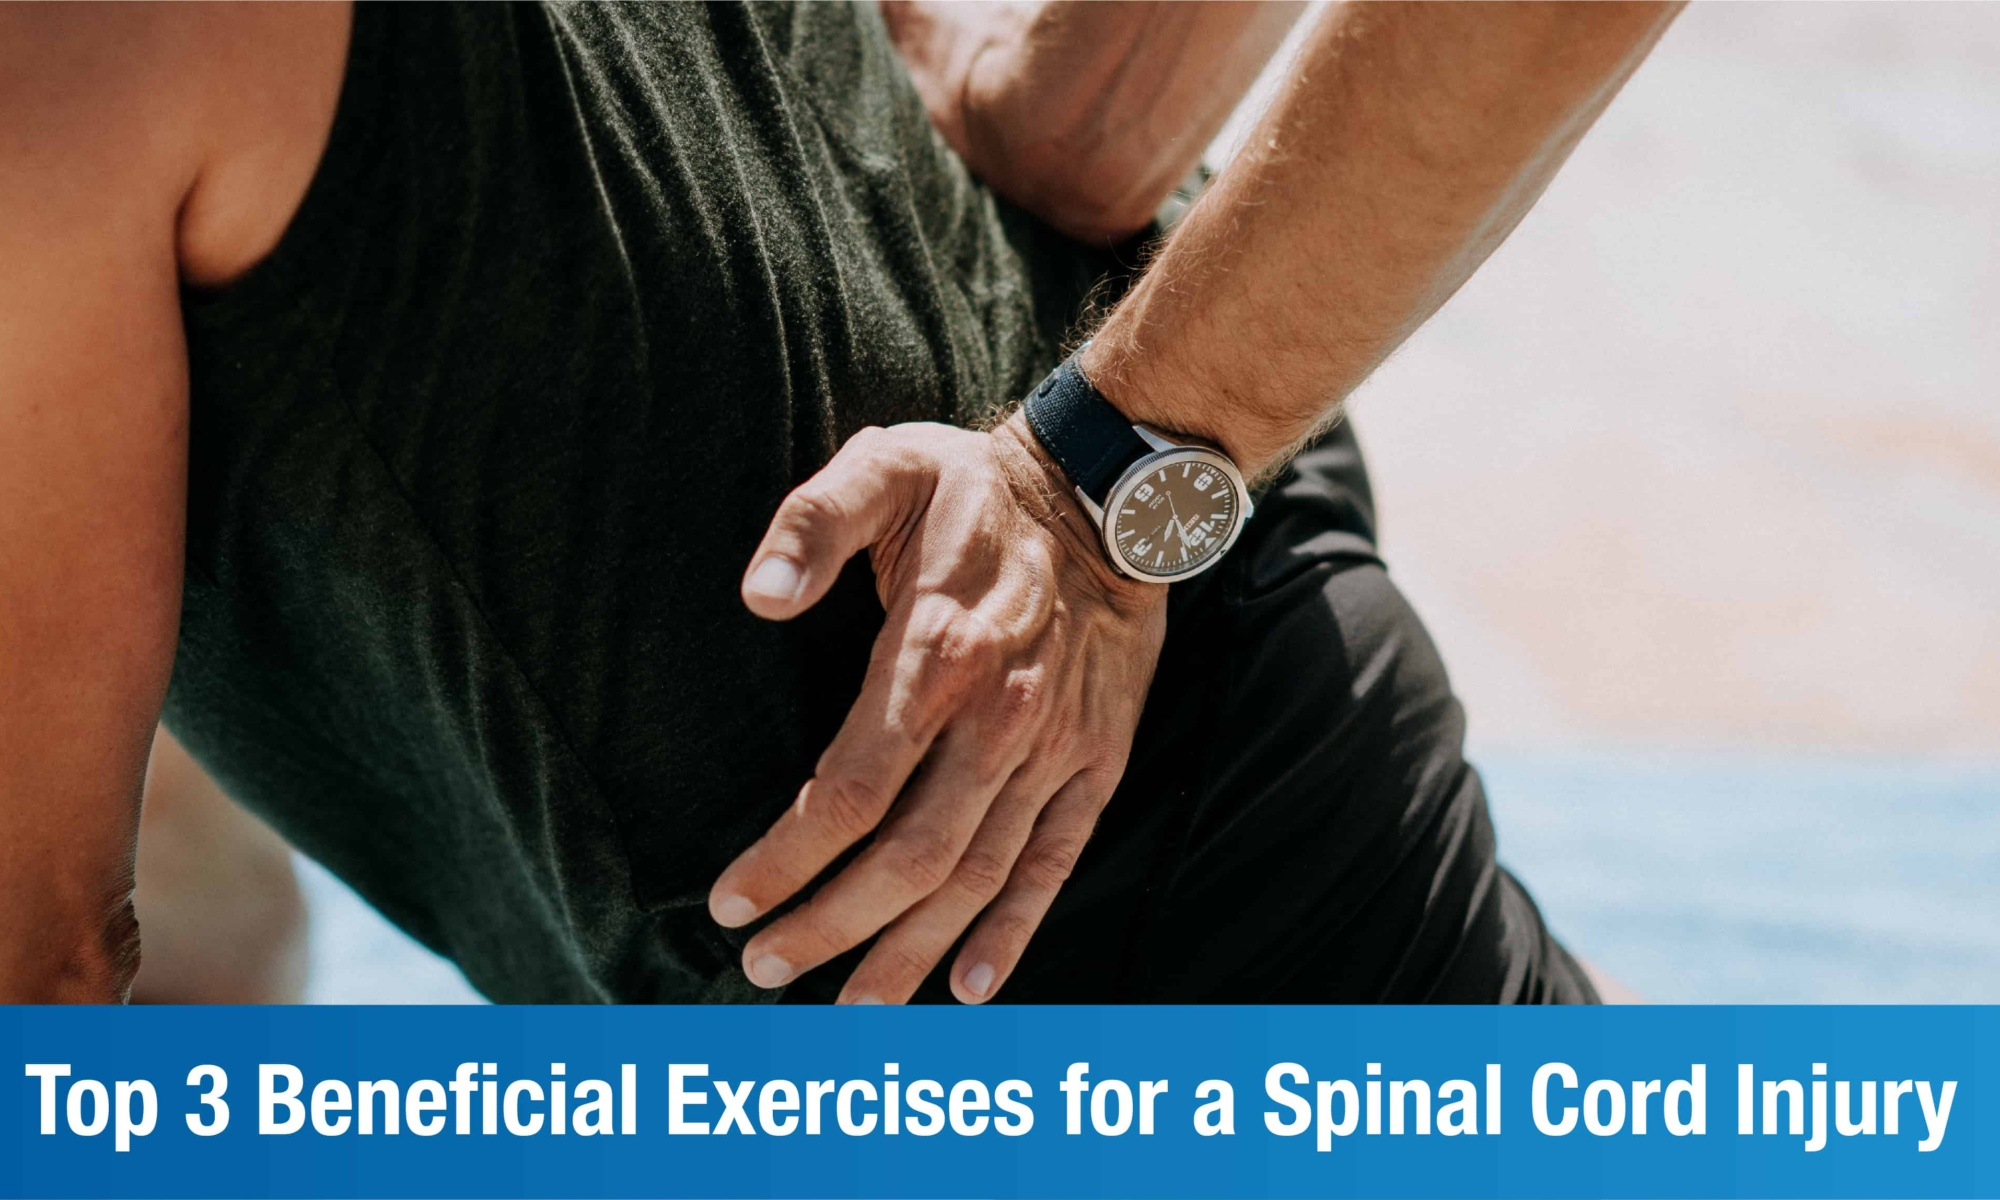 Top 3 Beneficial Exercises for a Spinal Cord Injury